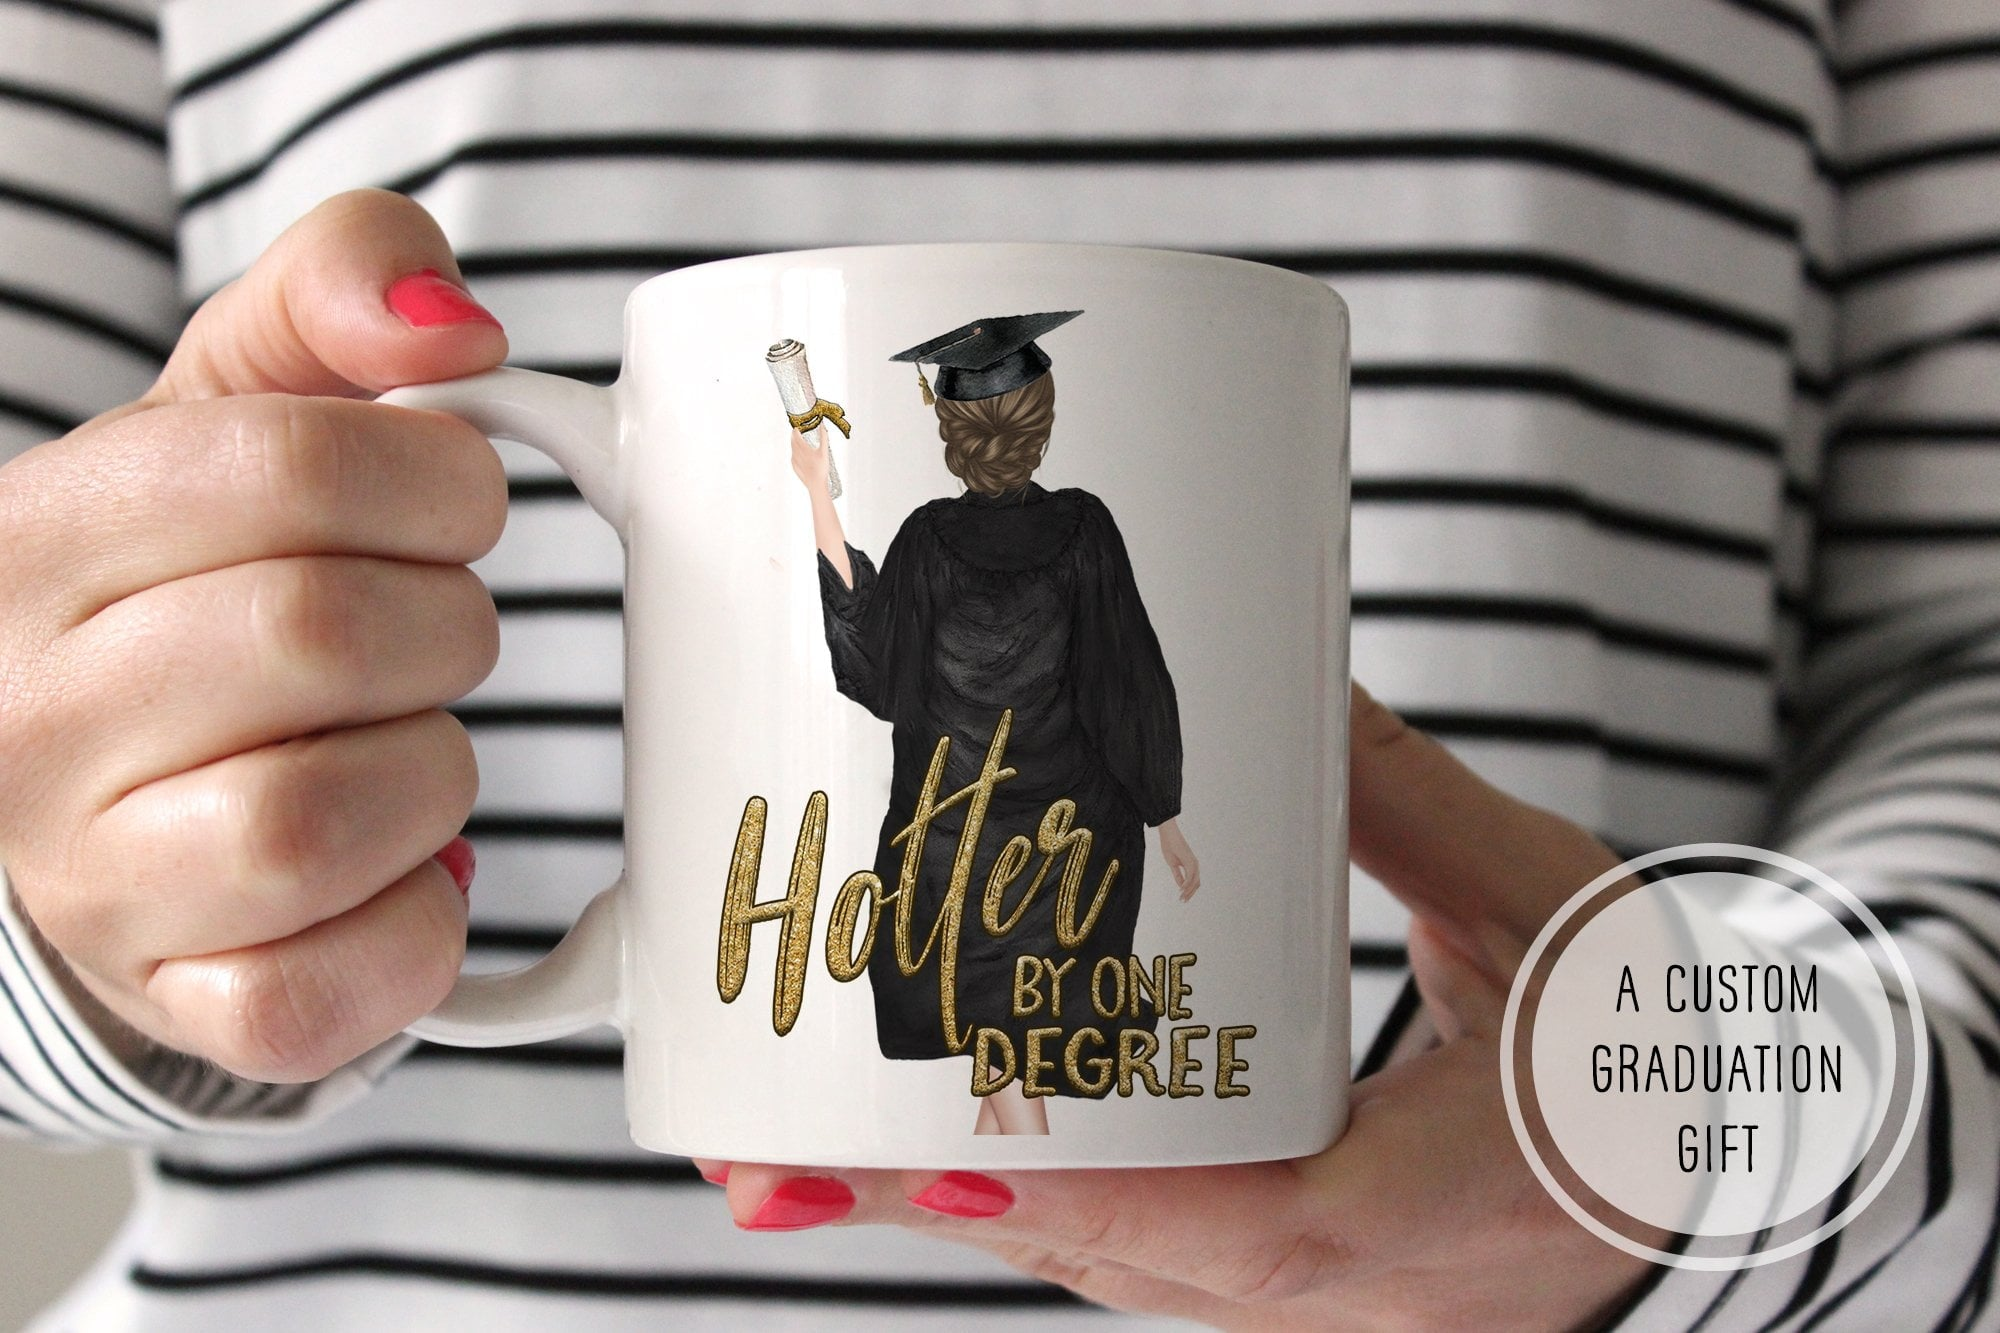 Graduation Gift For Girls | Hotter By One Degree Mug | Ollie + Hank